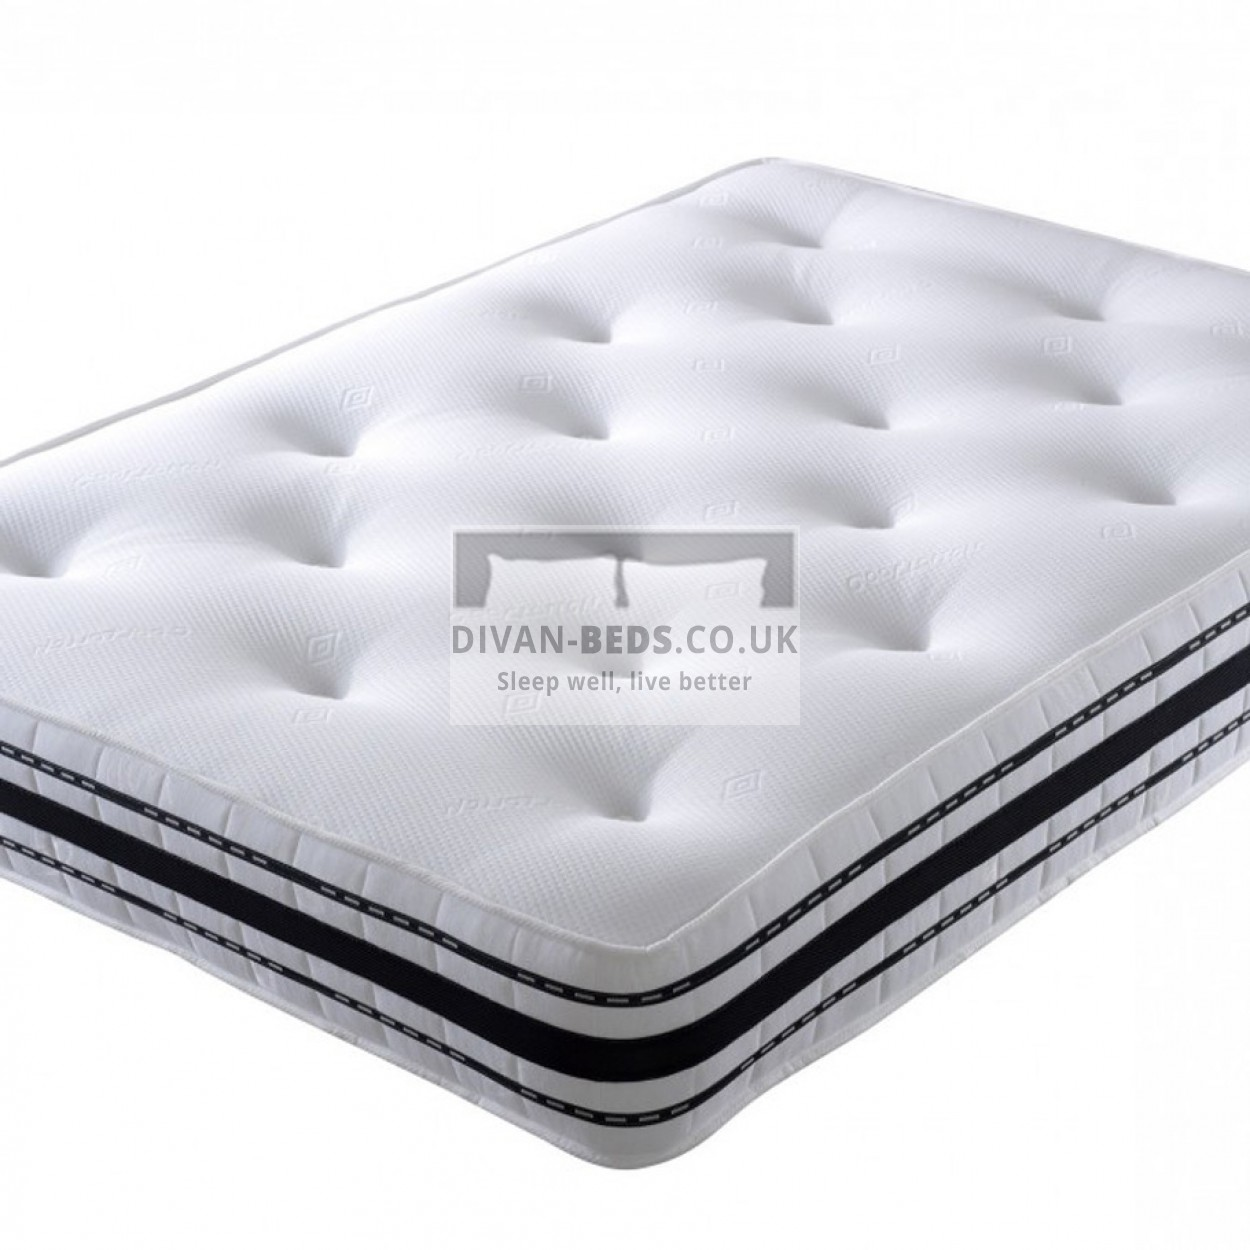 trend foam decor your cheap tempting alluring discountalluring cheapest home clearance memory ideen to price matress single as tempurpedic mattress twin size complete apply